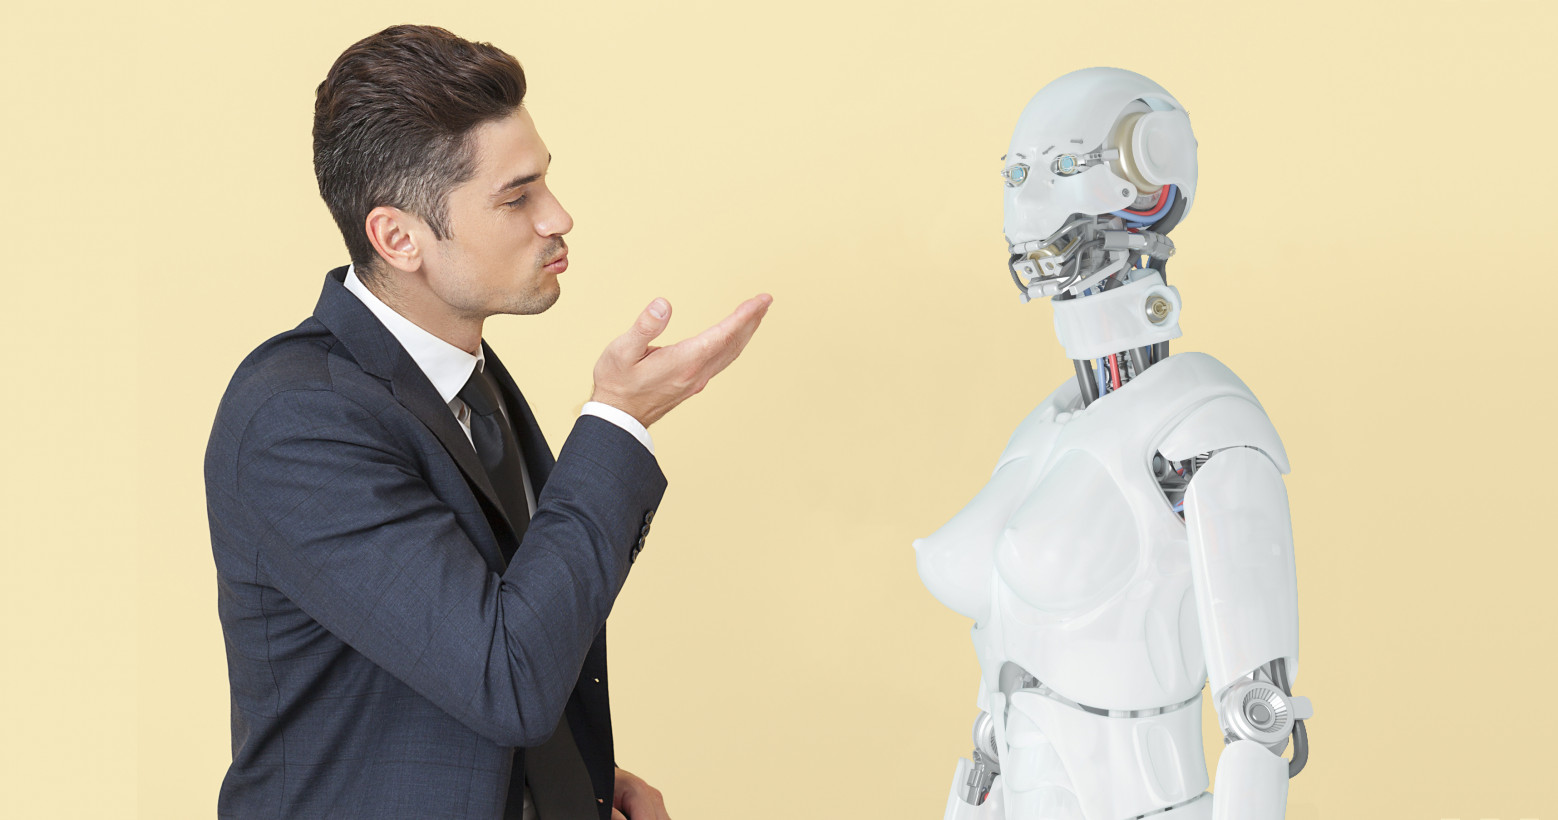 Bad news, journalists: Robots are writing really good headlines now